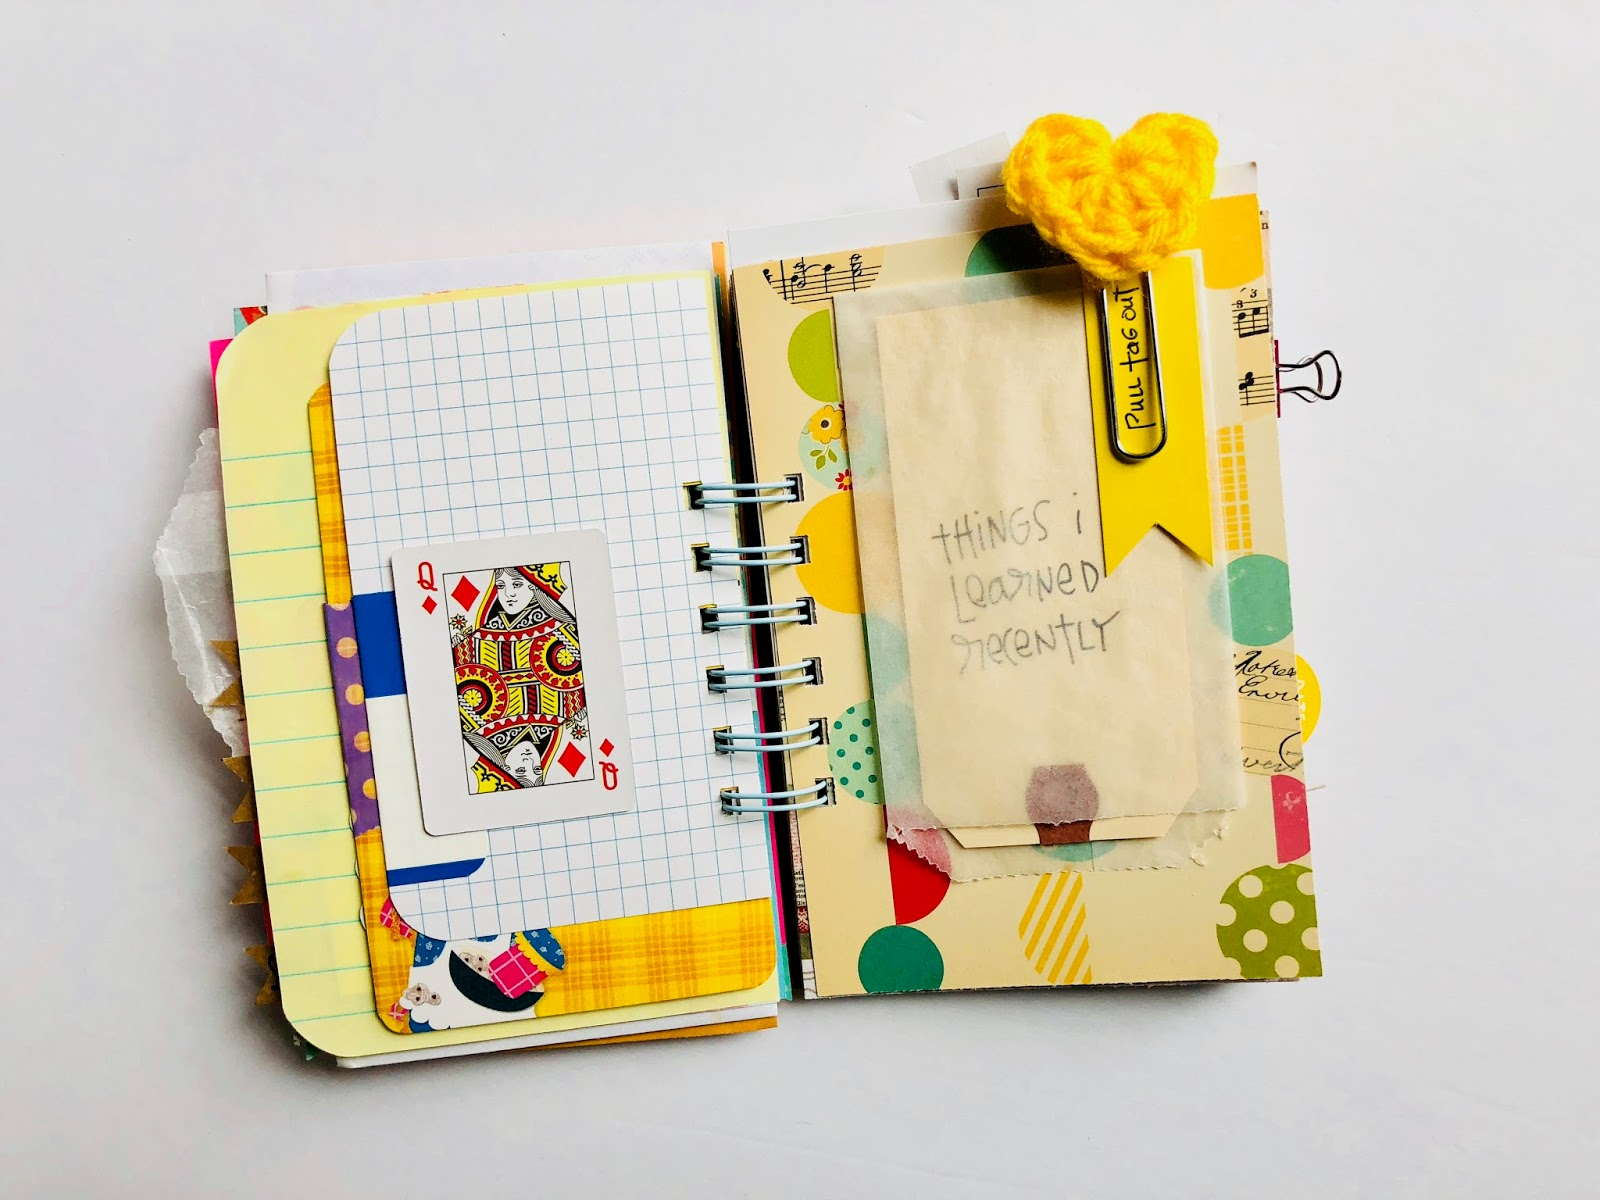 #30lists #listmaker #journaling prompts #smashbook #mixed paper journal #junk journal